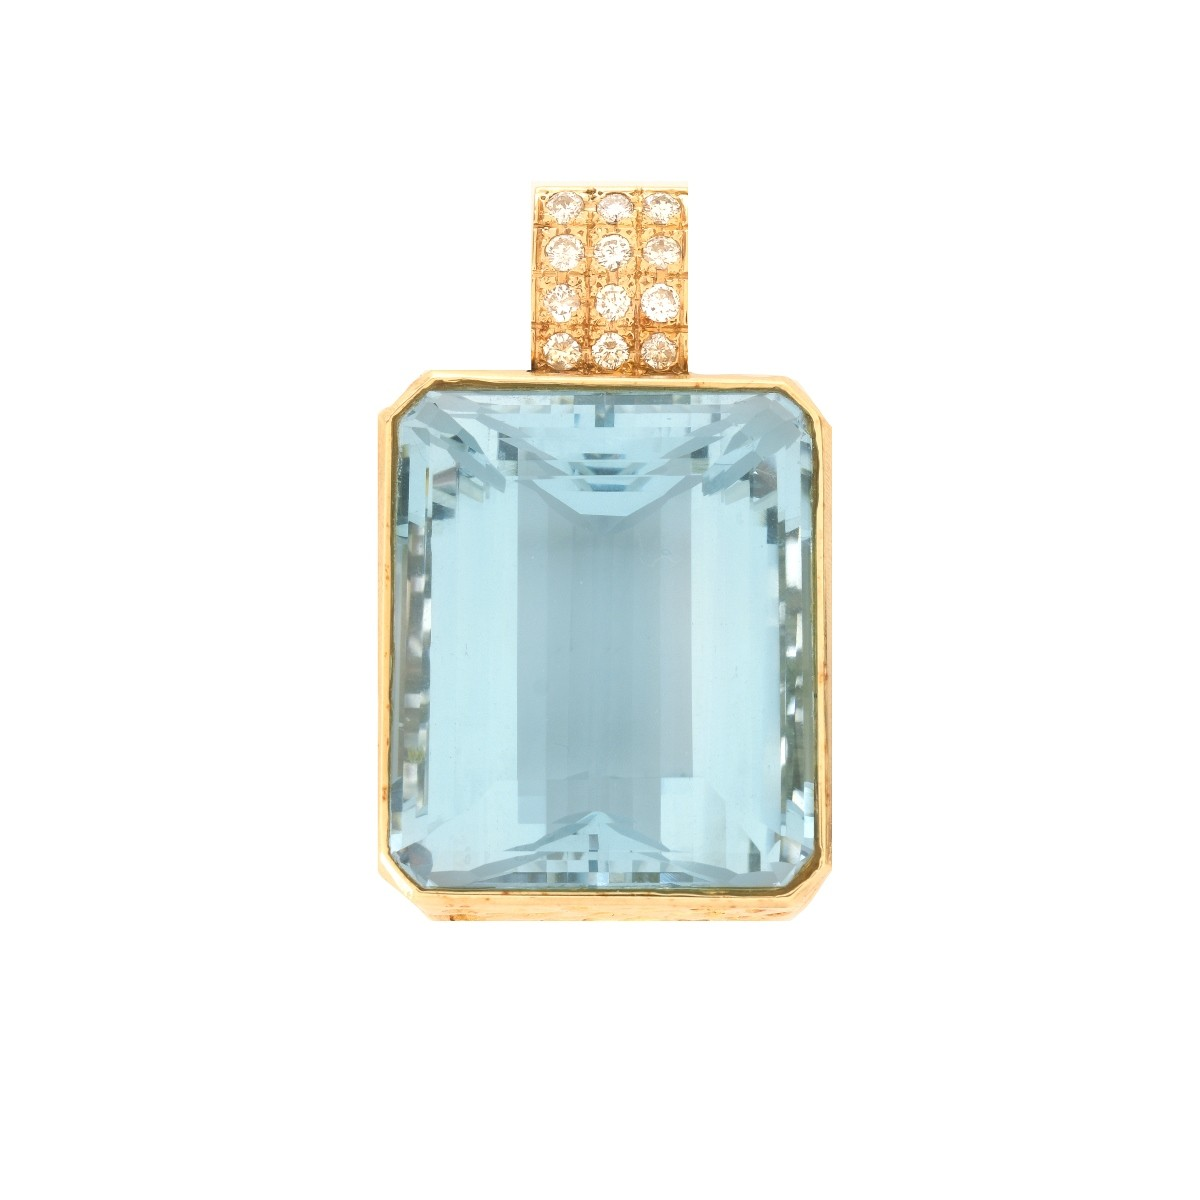 85.39ct Aquamarine, Diamond and 18K Pendant